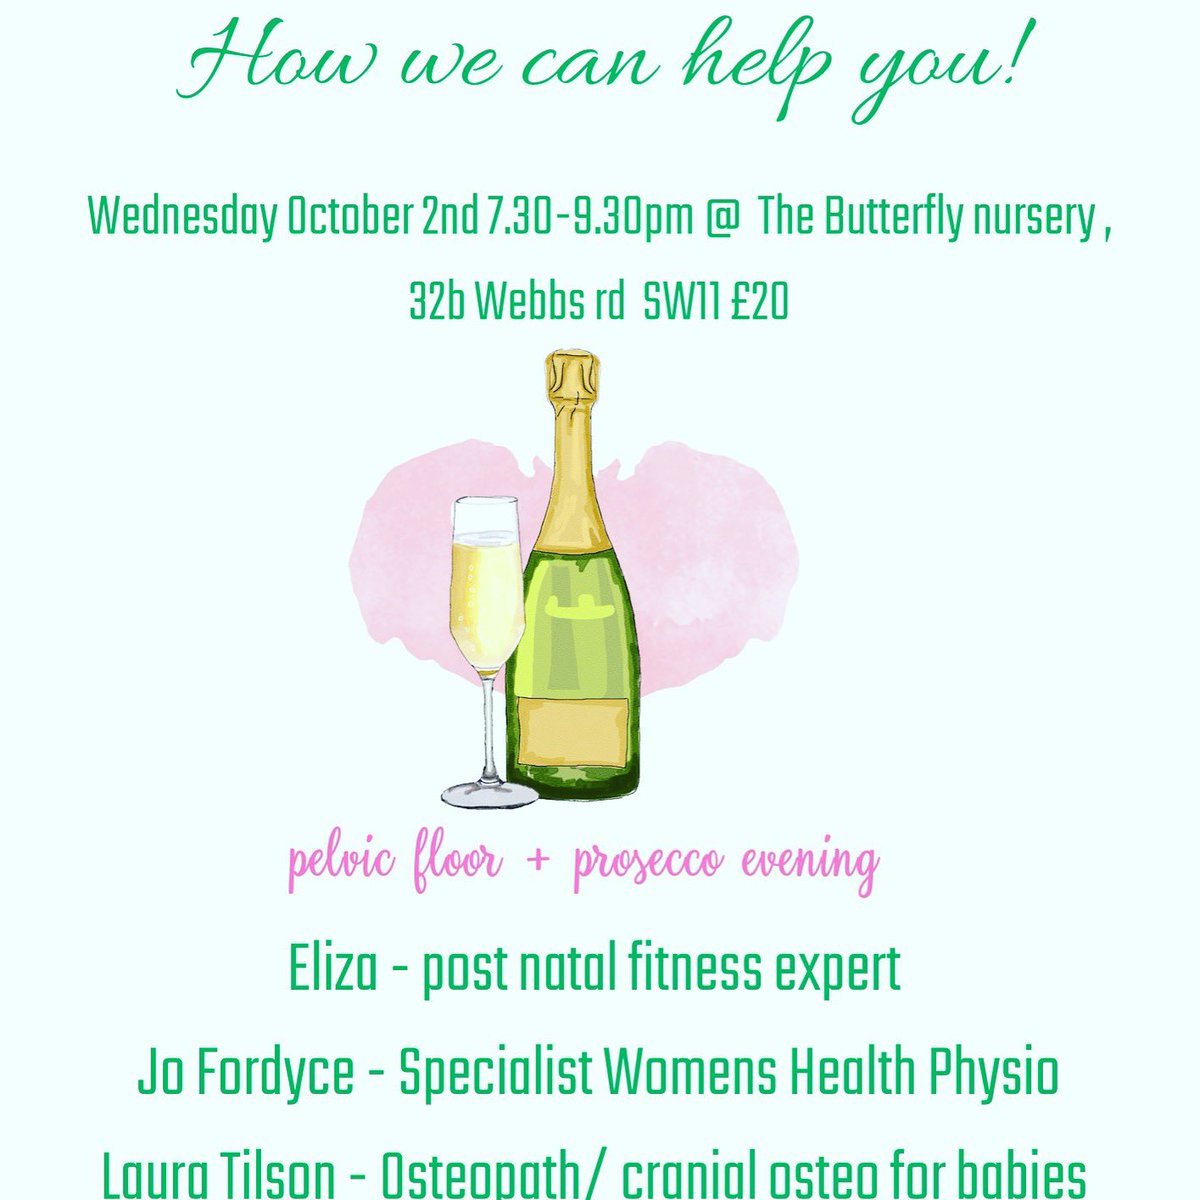 Don't miss your free goodie bag worth £25 and bottomless Prosecco - an evening of laughs and no leaks #holisticorerestore #everywoman #nopads #runningmums #babies #clapham #webbsroad #mumsinlondon #pensionerspic.twitter.com/7ukxHgSkfK